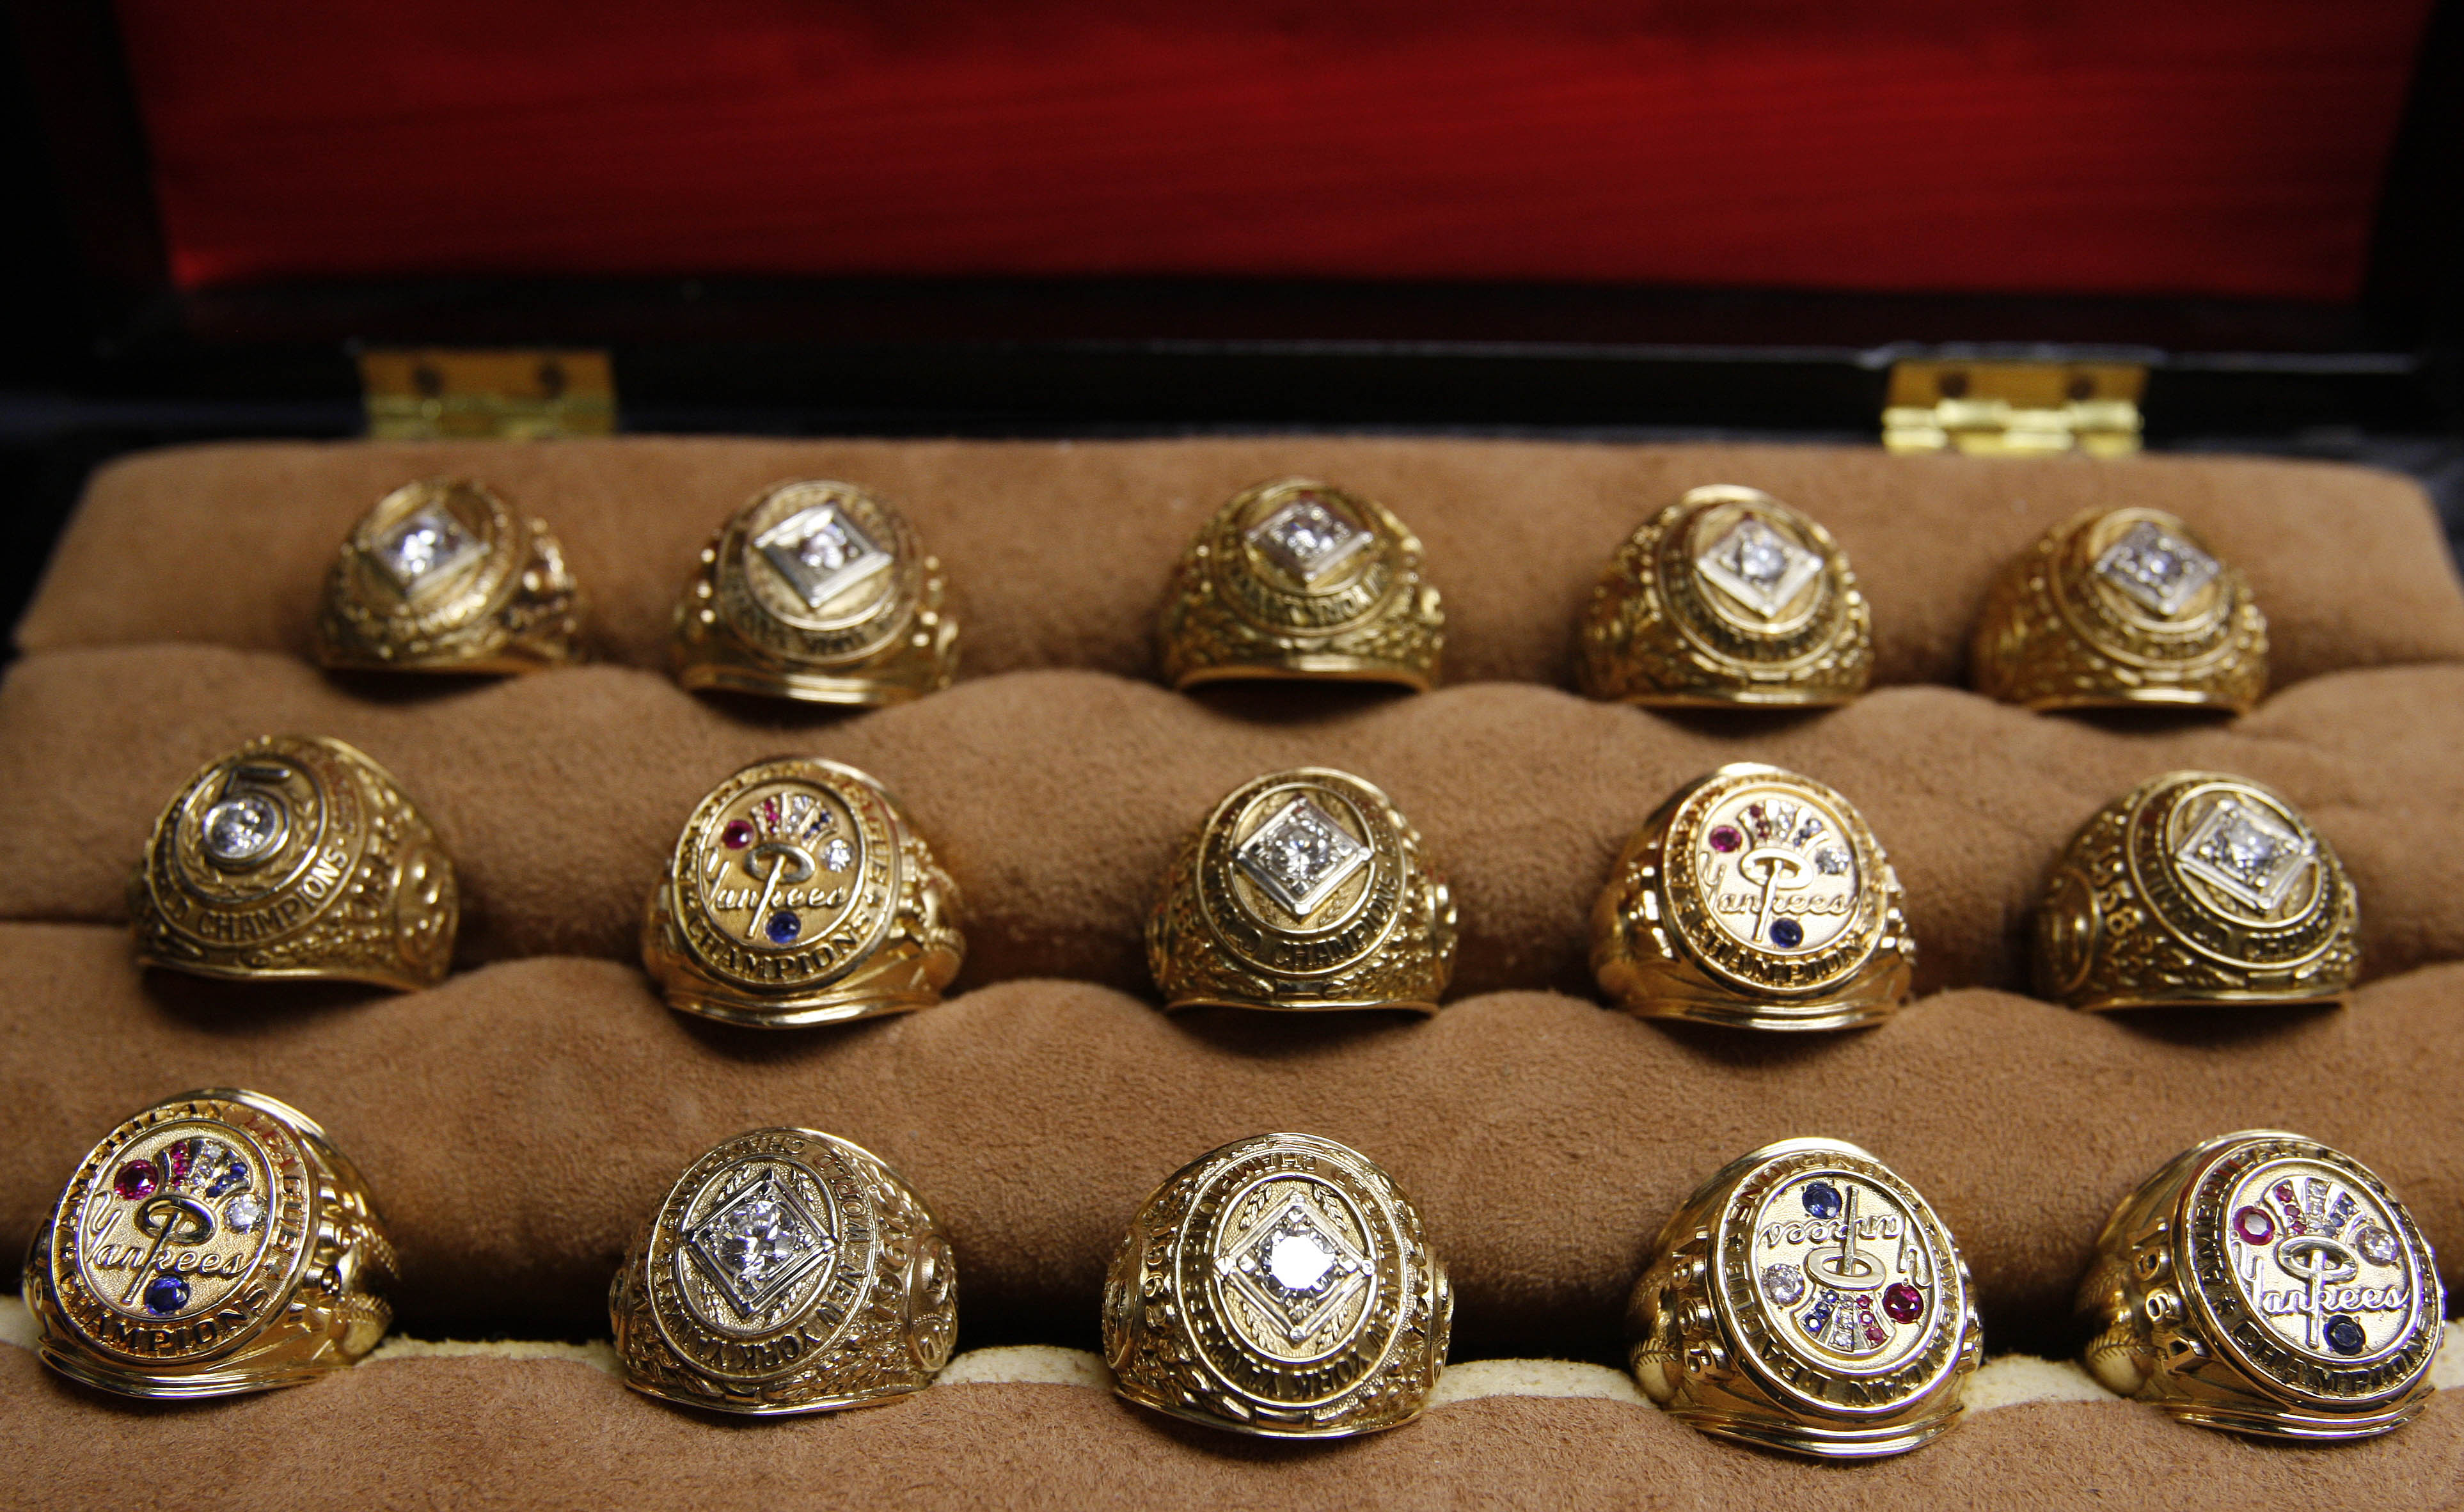 <div class='meta'><div class='origin-logo' data-origin='AP'></div><span class='caption-text' data-credit='AP Photo/Julie Jacobson'>A collection of World Series and American League Championship rings owned by former Yankees' owner Del Webb, is displayed in a case during a preview for a memorabilia auction.</span></div>